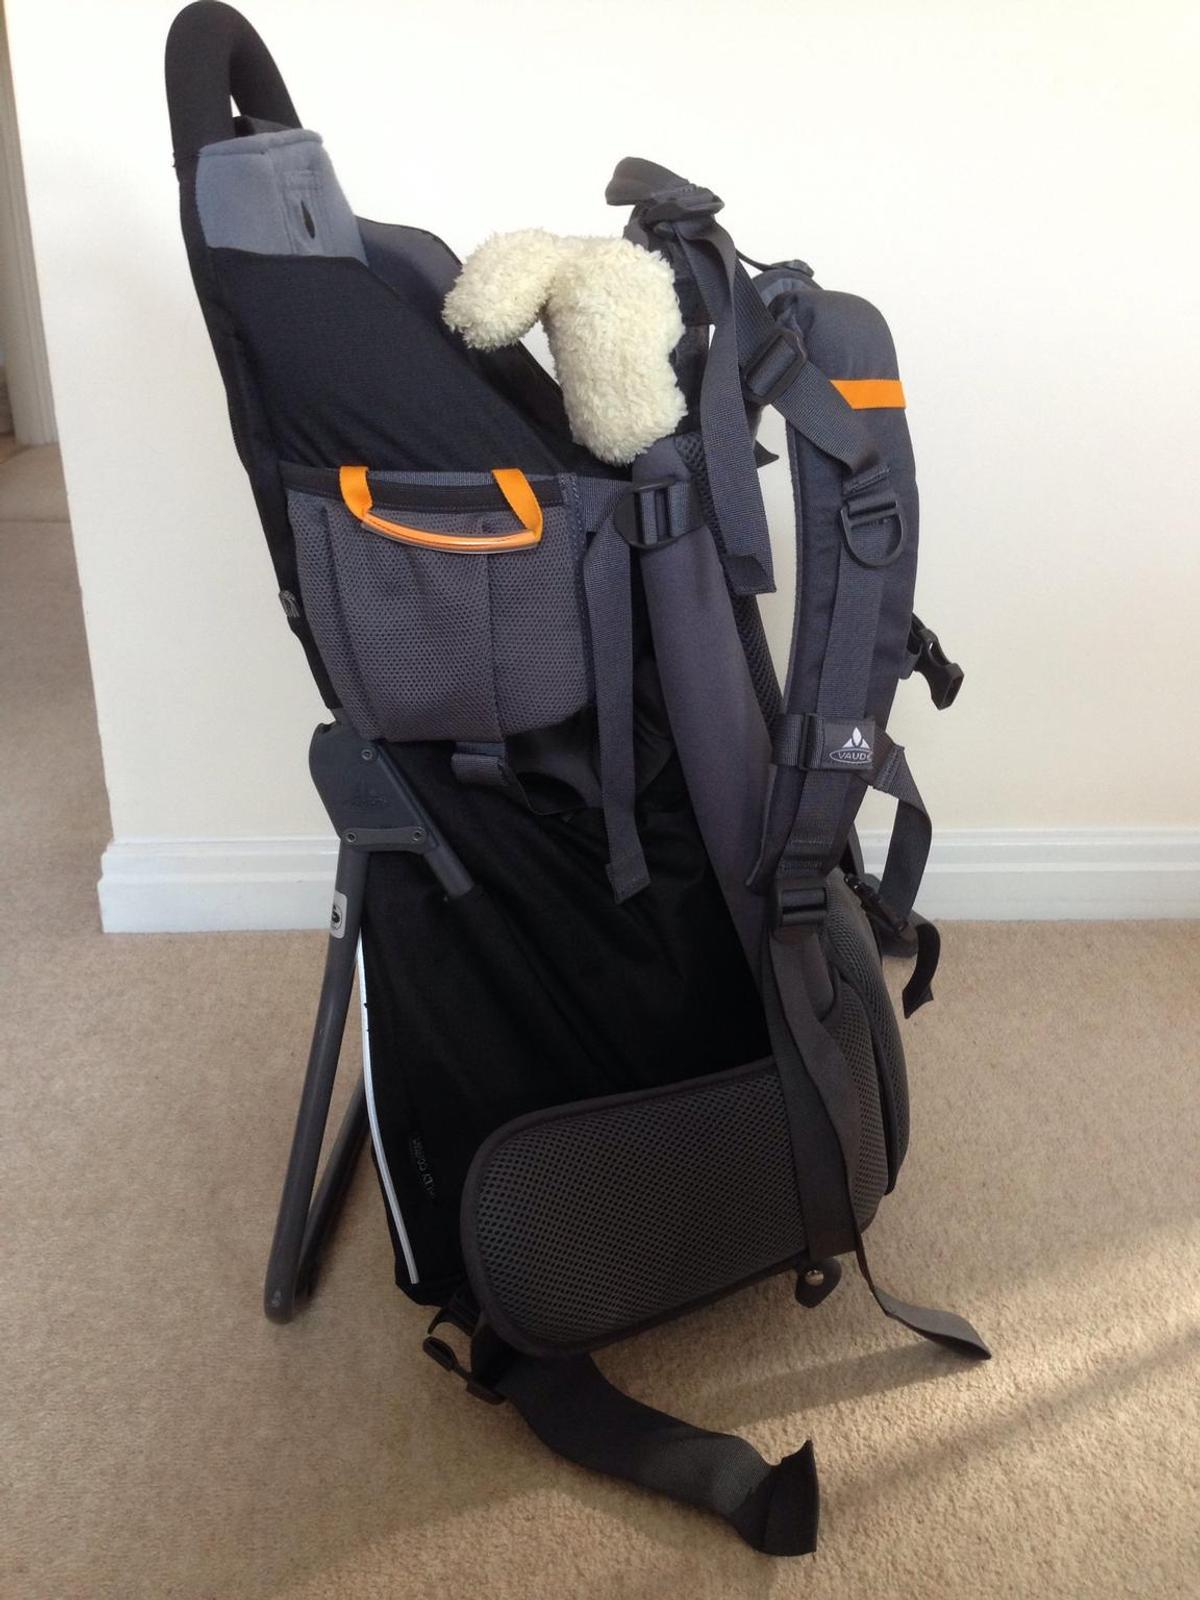 e24b6dfbc5 Vaude Jolly Comfort baby carrier EX Cond in CW2 Weston for £55.00 ...